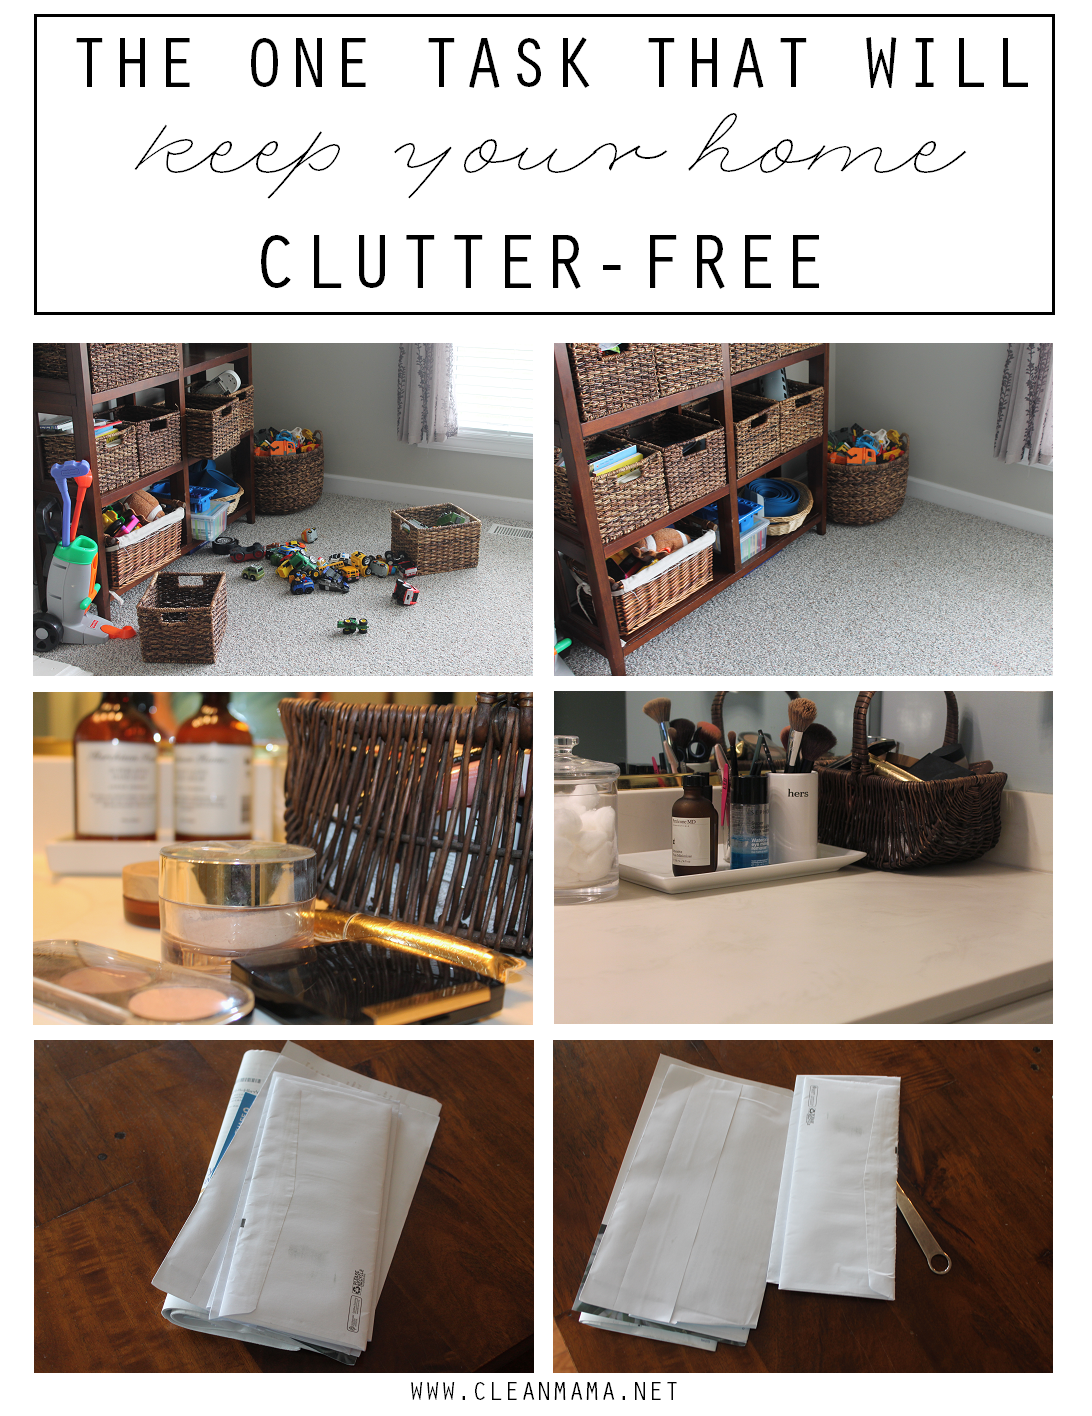 The One Task That Will Keep Your Home Clutter-Free via Clean Mama